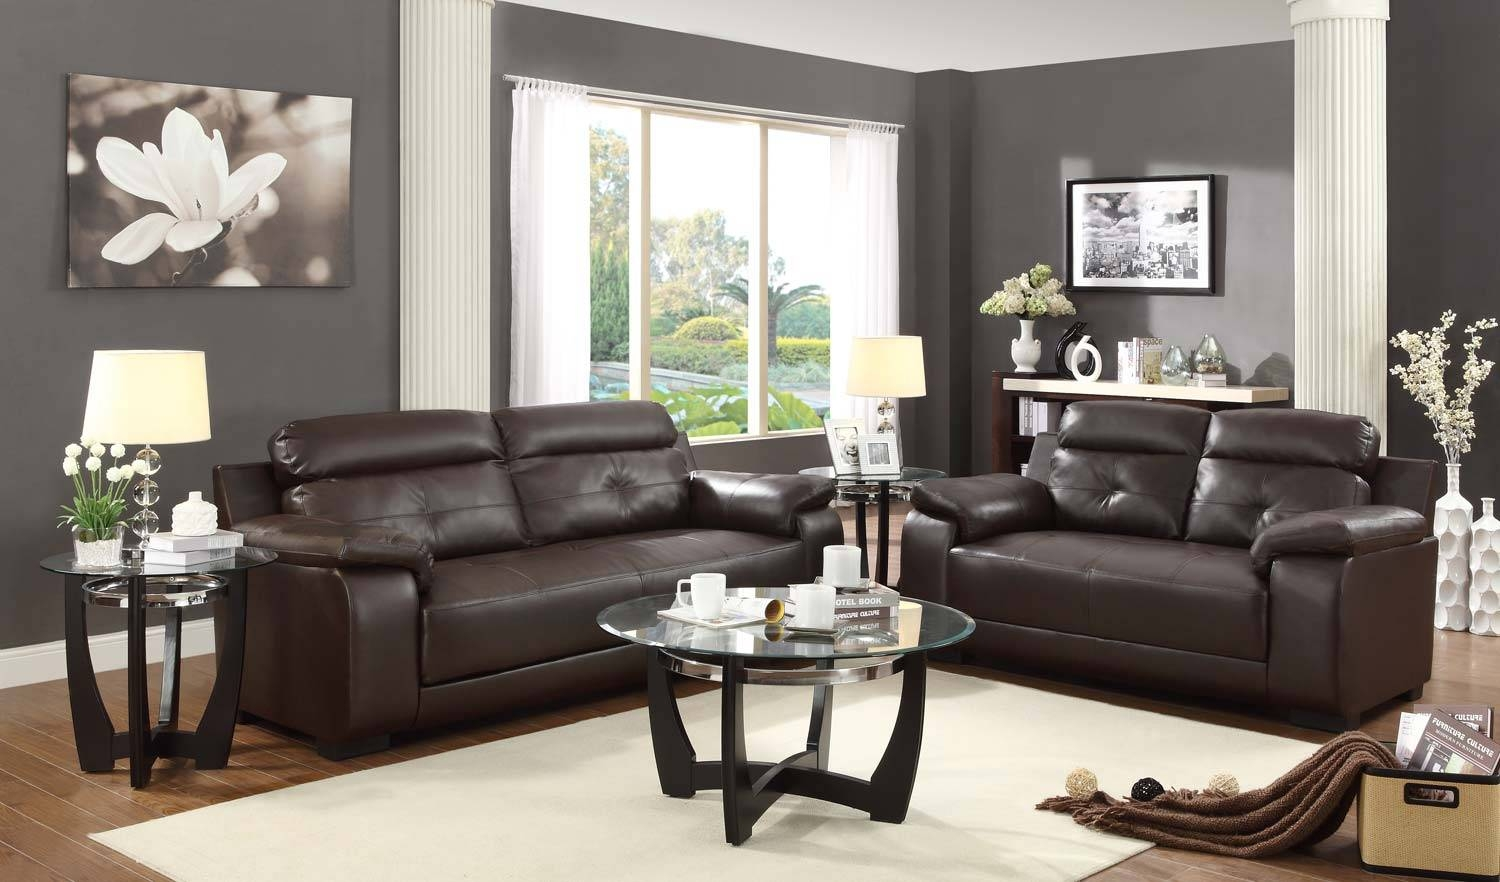 Charming Zane Sectional Sofa 16 For Your Diana Dark Brown Leather inside Diana Dark Brown Leather Sectional Sofa Set (Image 12 of 30)